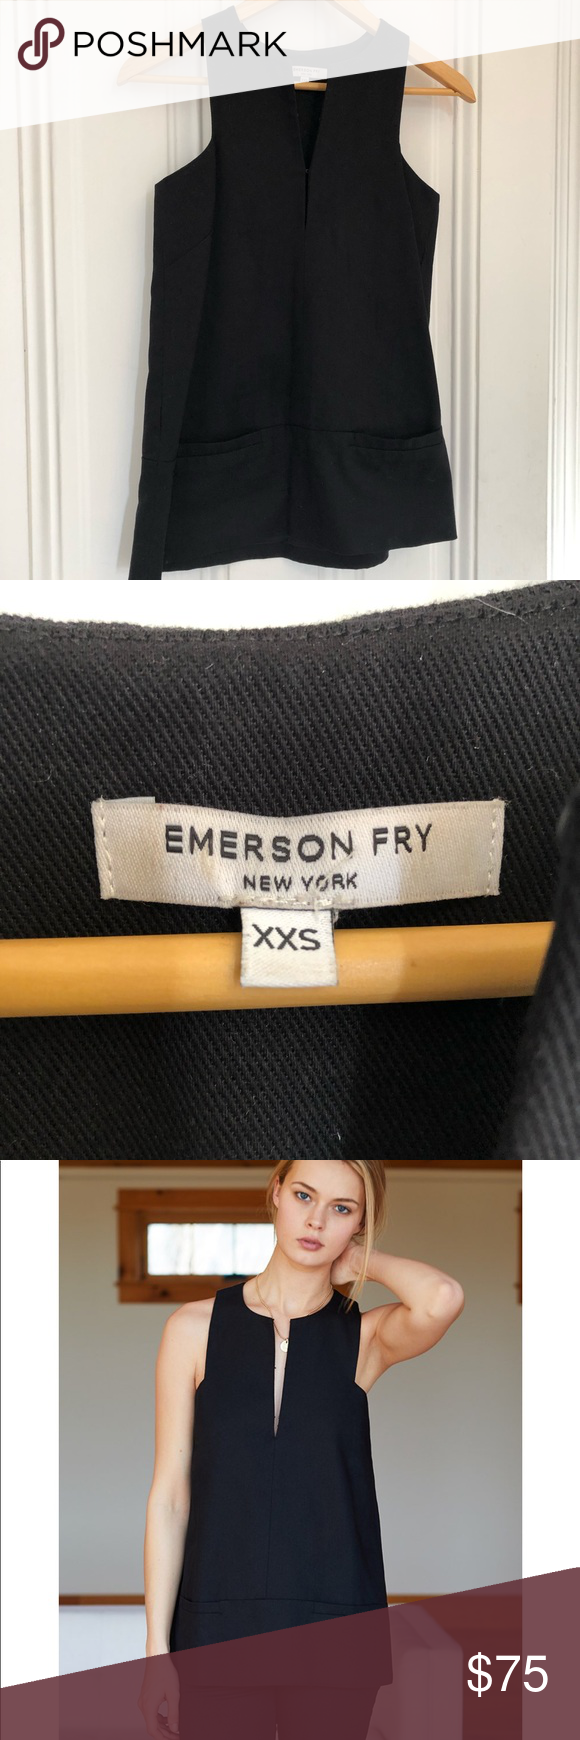 Emerson Fry A-like mod top Emerson Fry A line mod top with front welt pockets Emerson Fry Tops Tank Tops #emersonfry Emerson Fry A-like mod top Emerson Fry A line mod top with front welt pockets Emerson Fry Tops Tank Tops #emersonfry